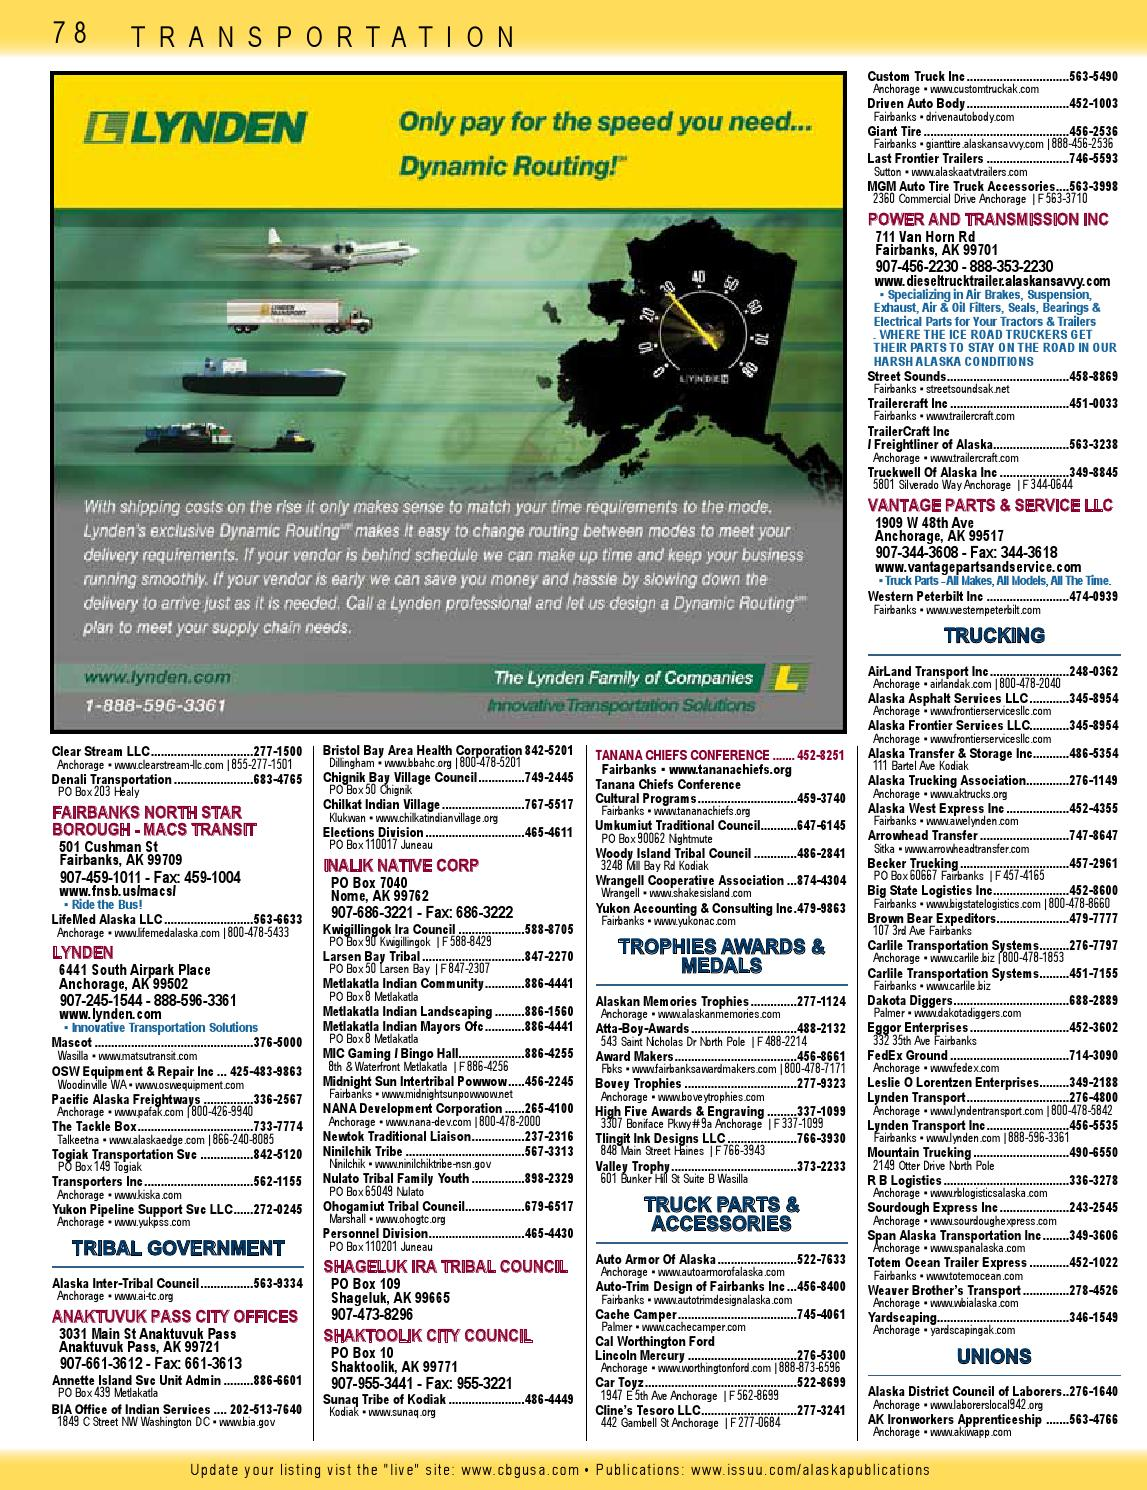 Worthington Ford Anchorage >> 2014 Alaska Native Directory Fall Yellow Pages Section 3 By